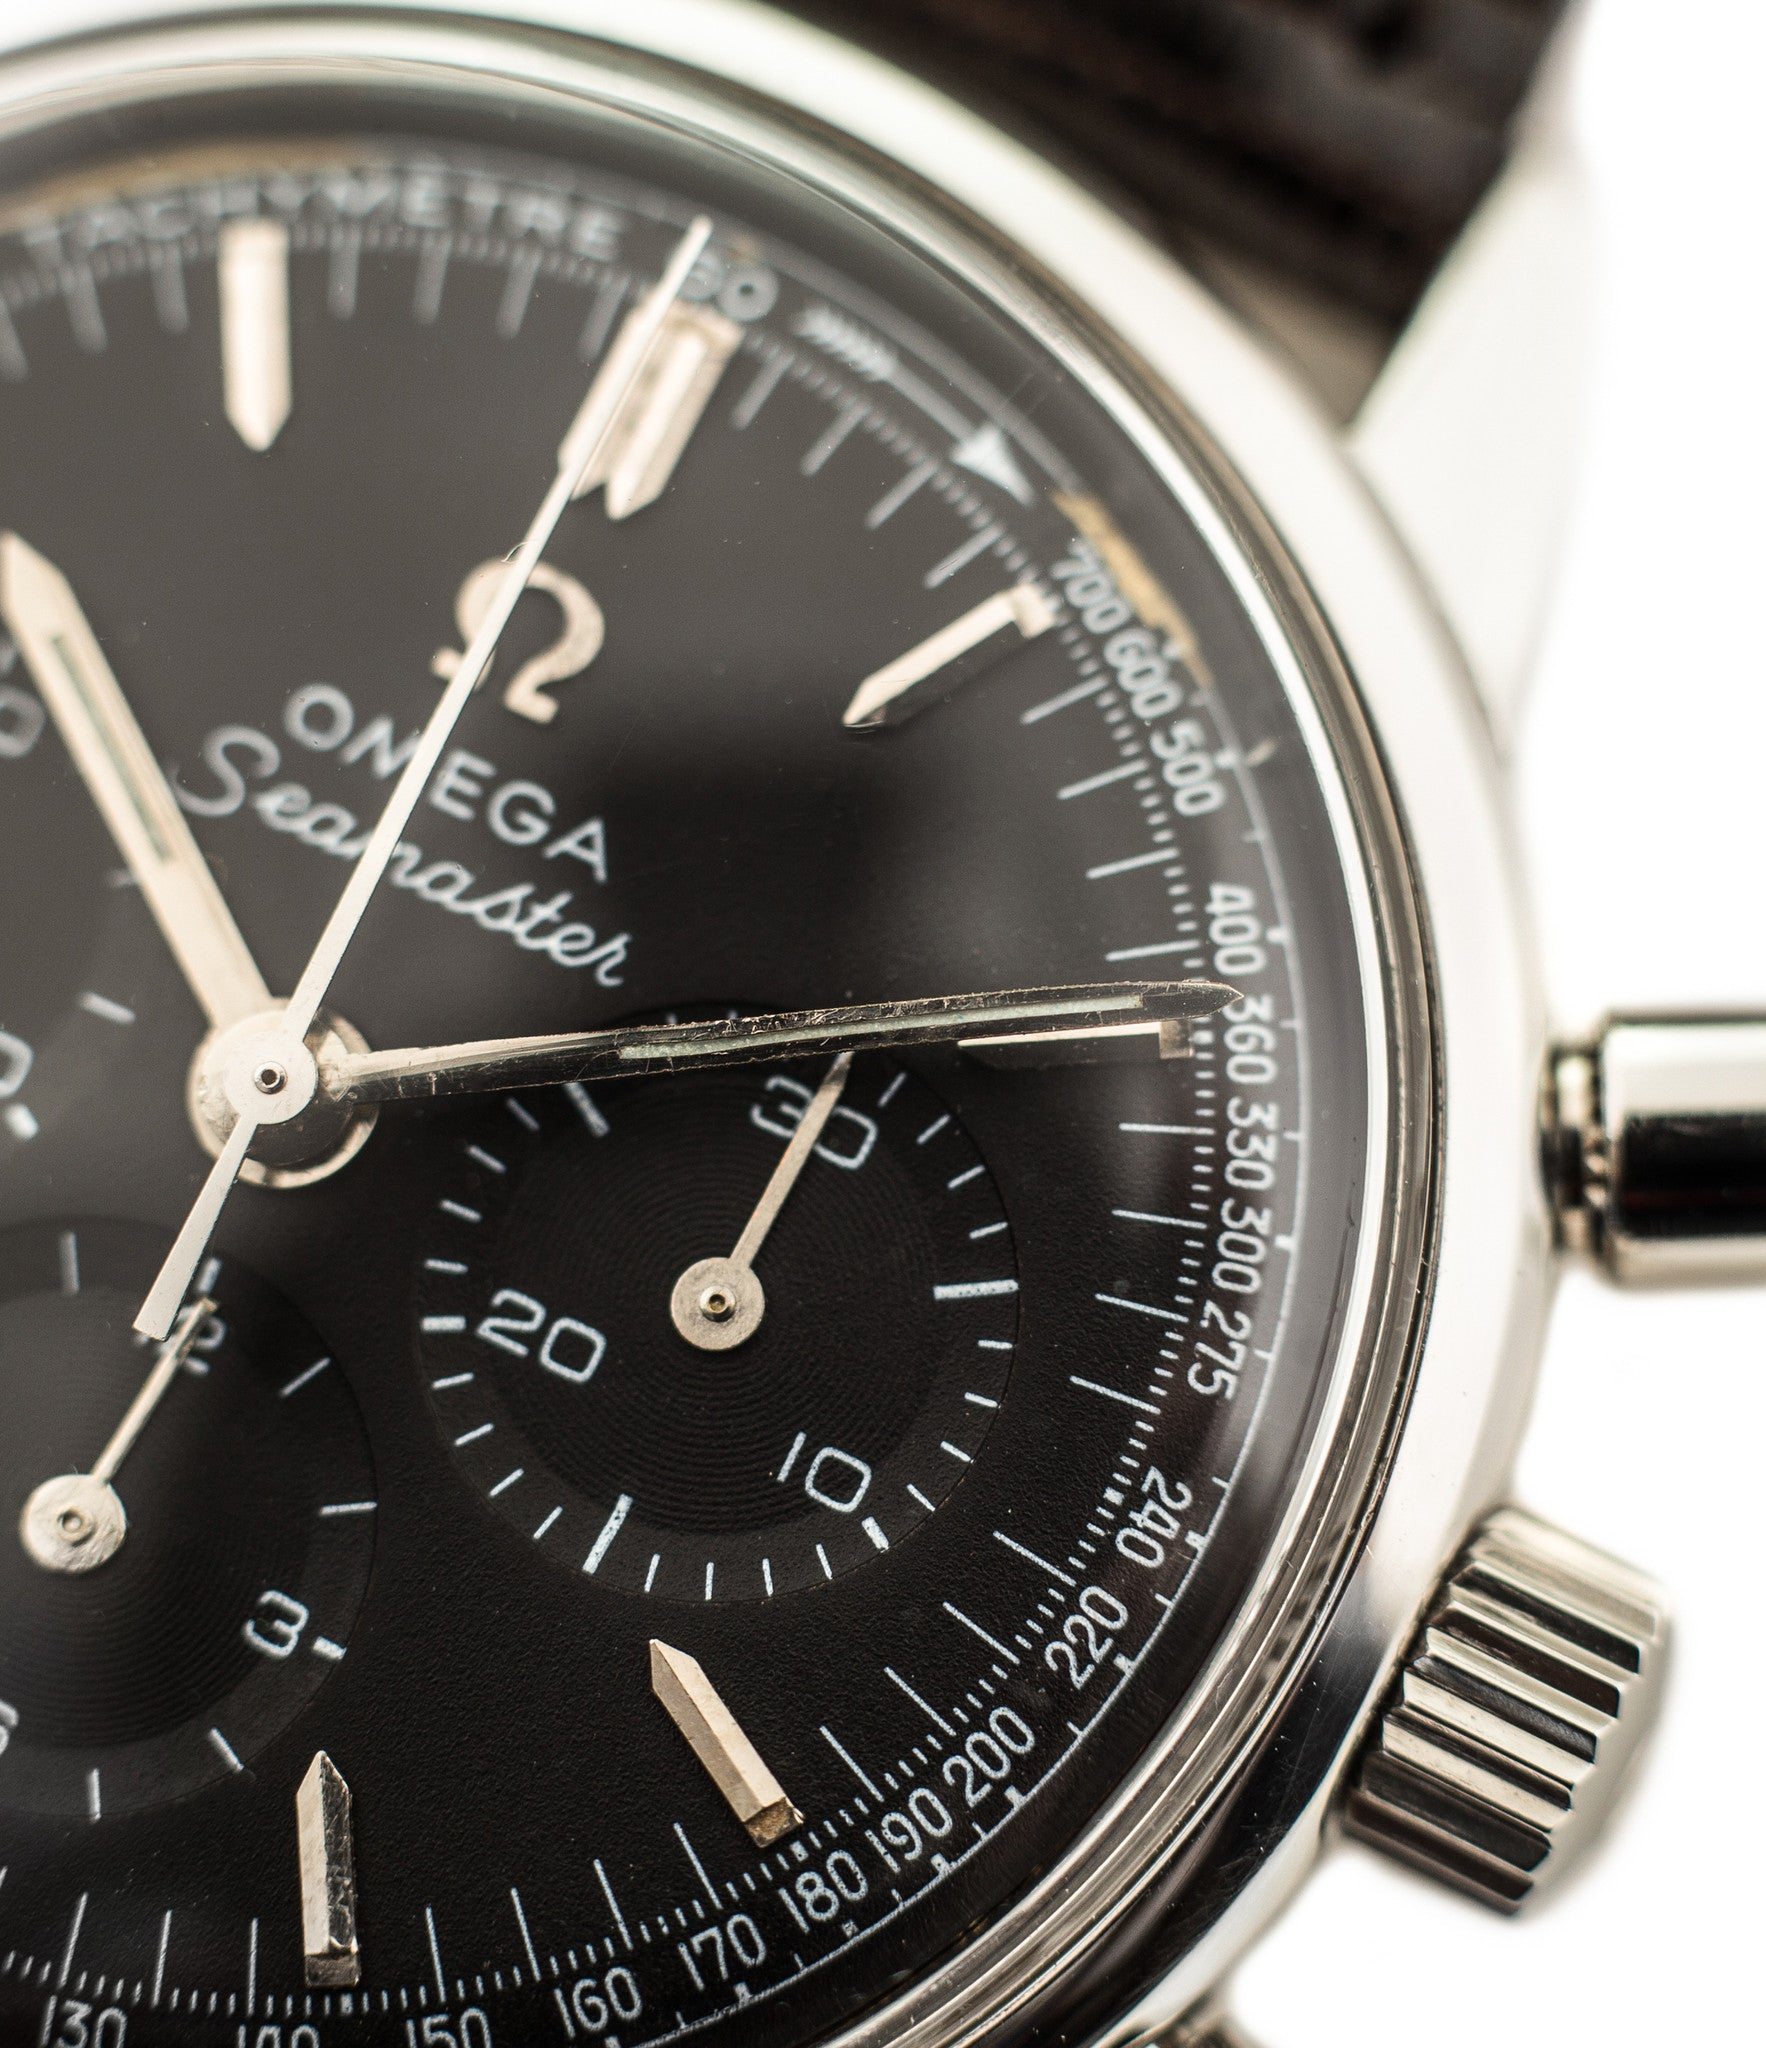 ... buy Omega Seamaster Chronograph 105.001 Cal. 321 rare black dial  vintage steel watch for sale ...